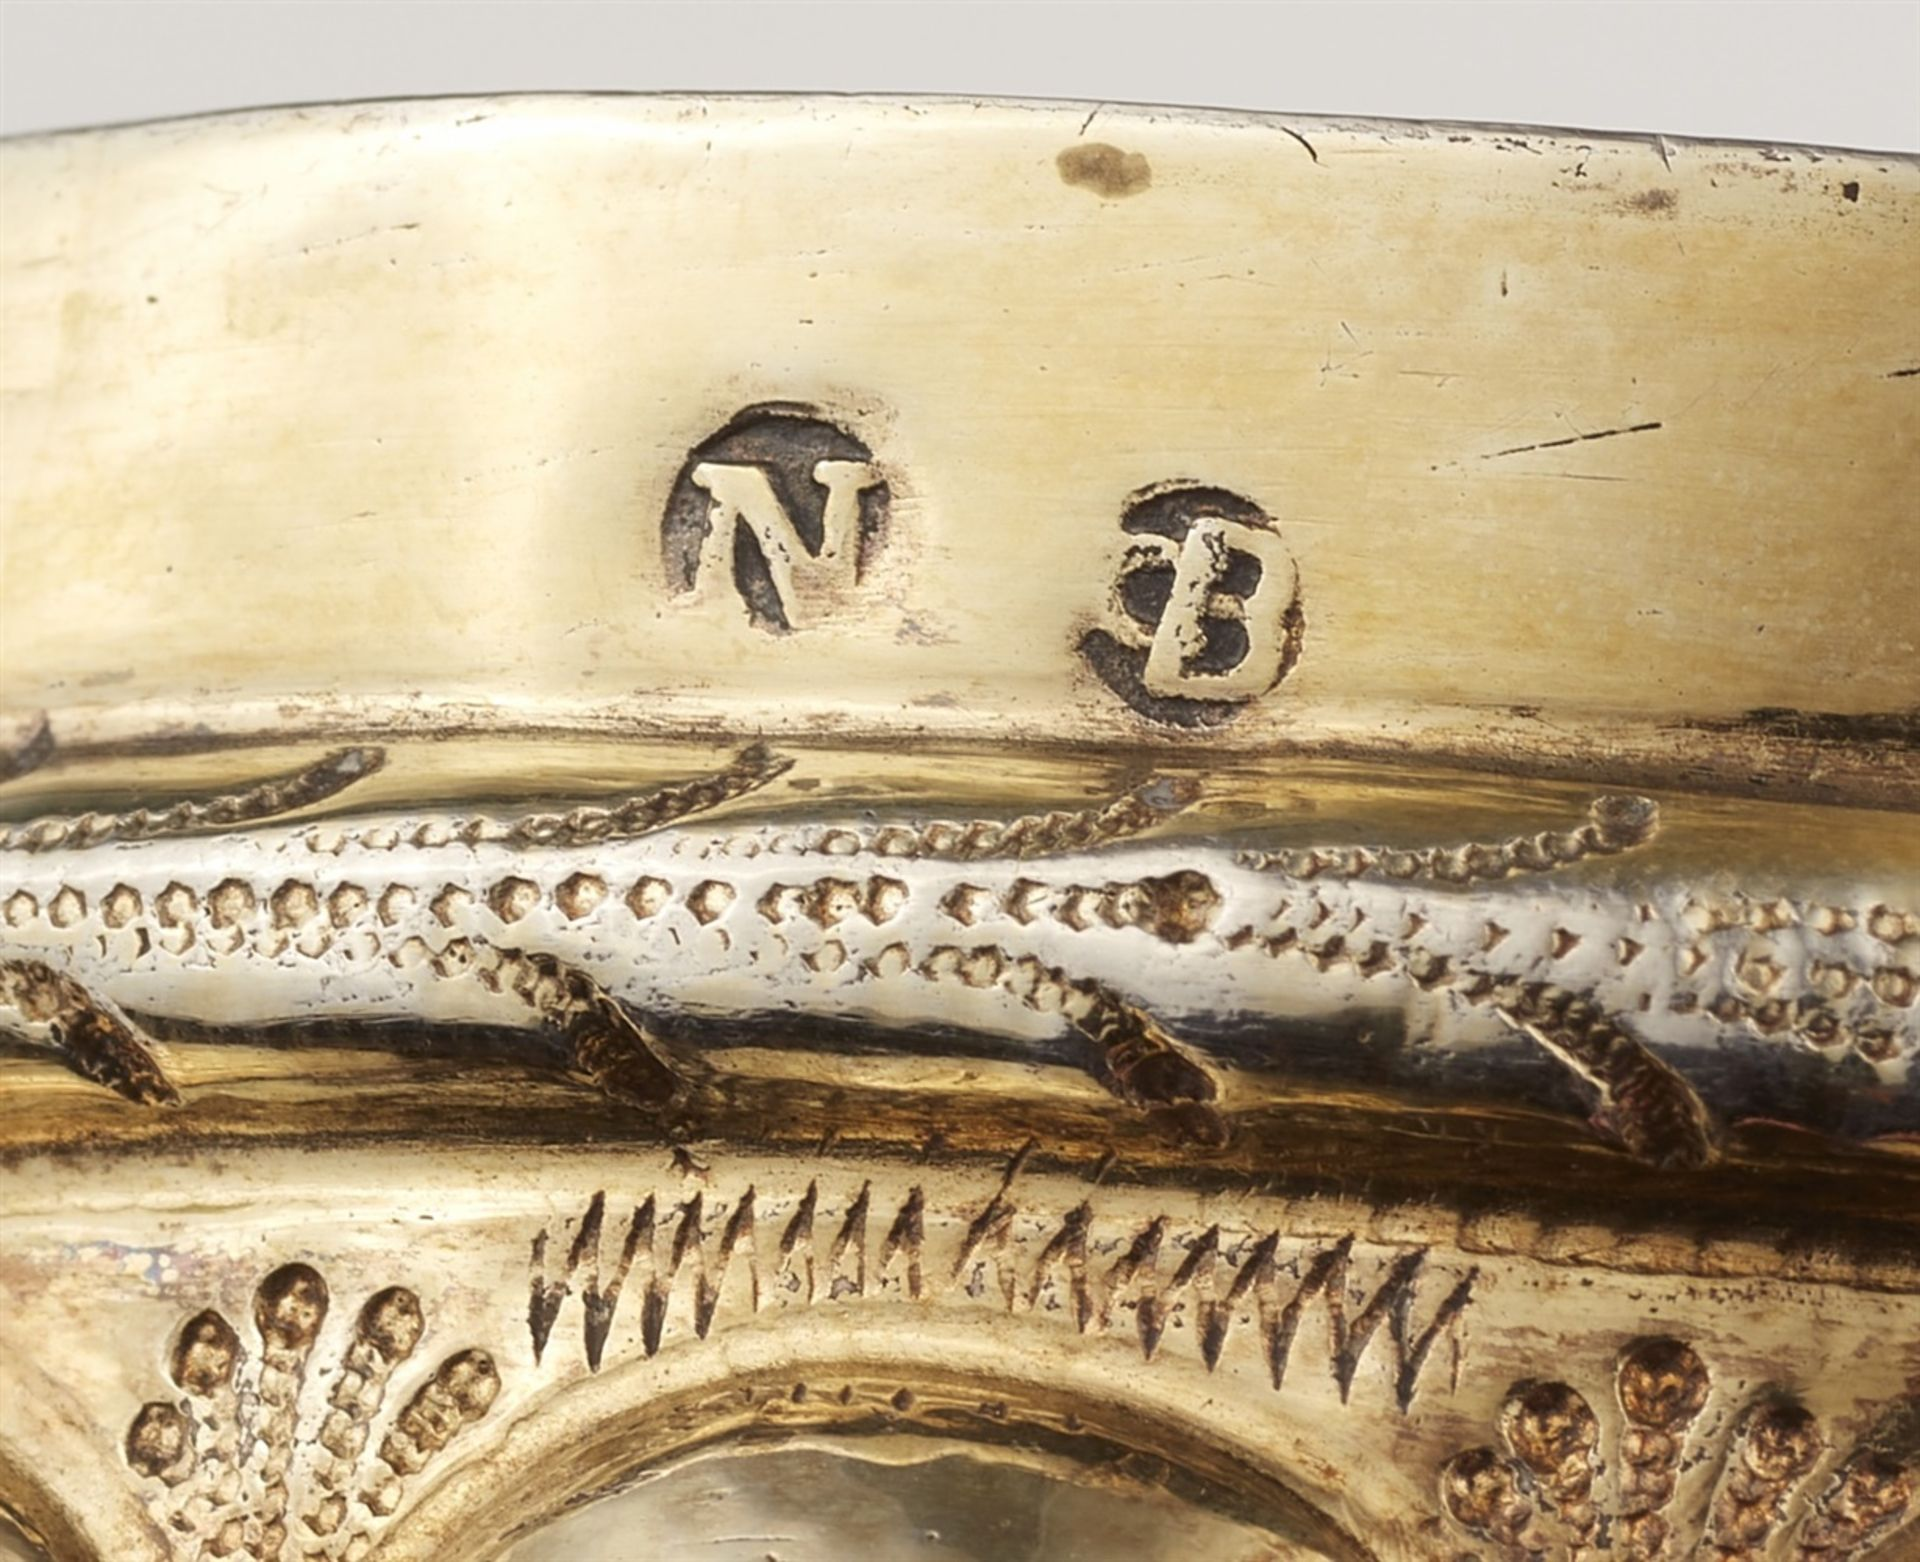 Los 715 - A Nuremberg silver nesting gobletSilver; gold-plated. Silver-gilt goblet formed from two identical